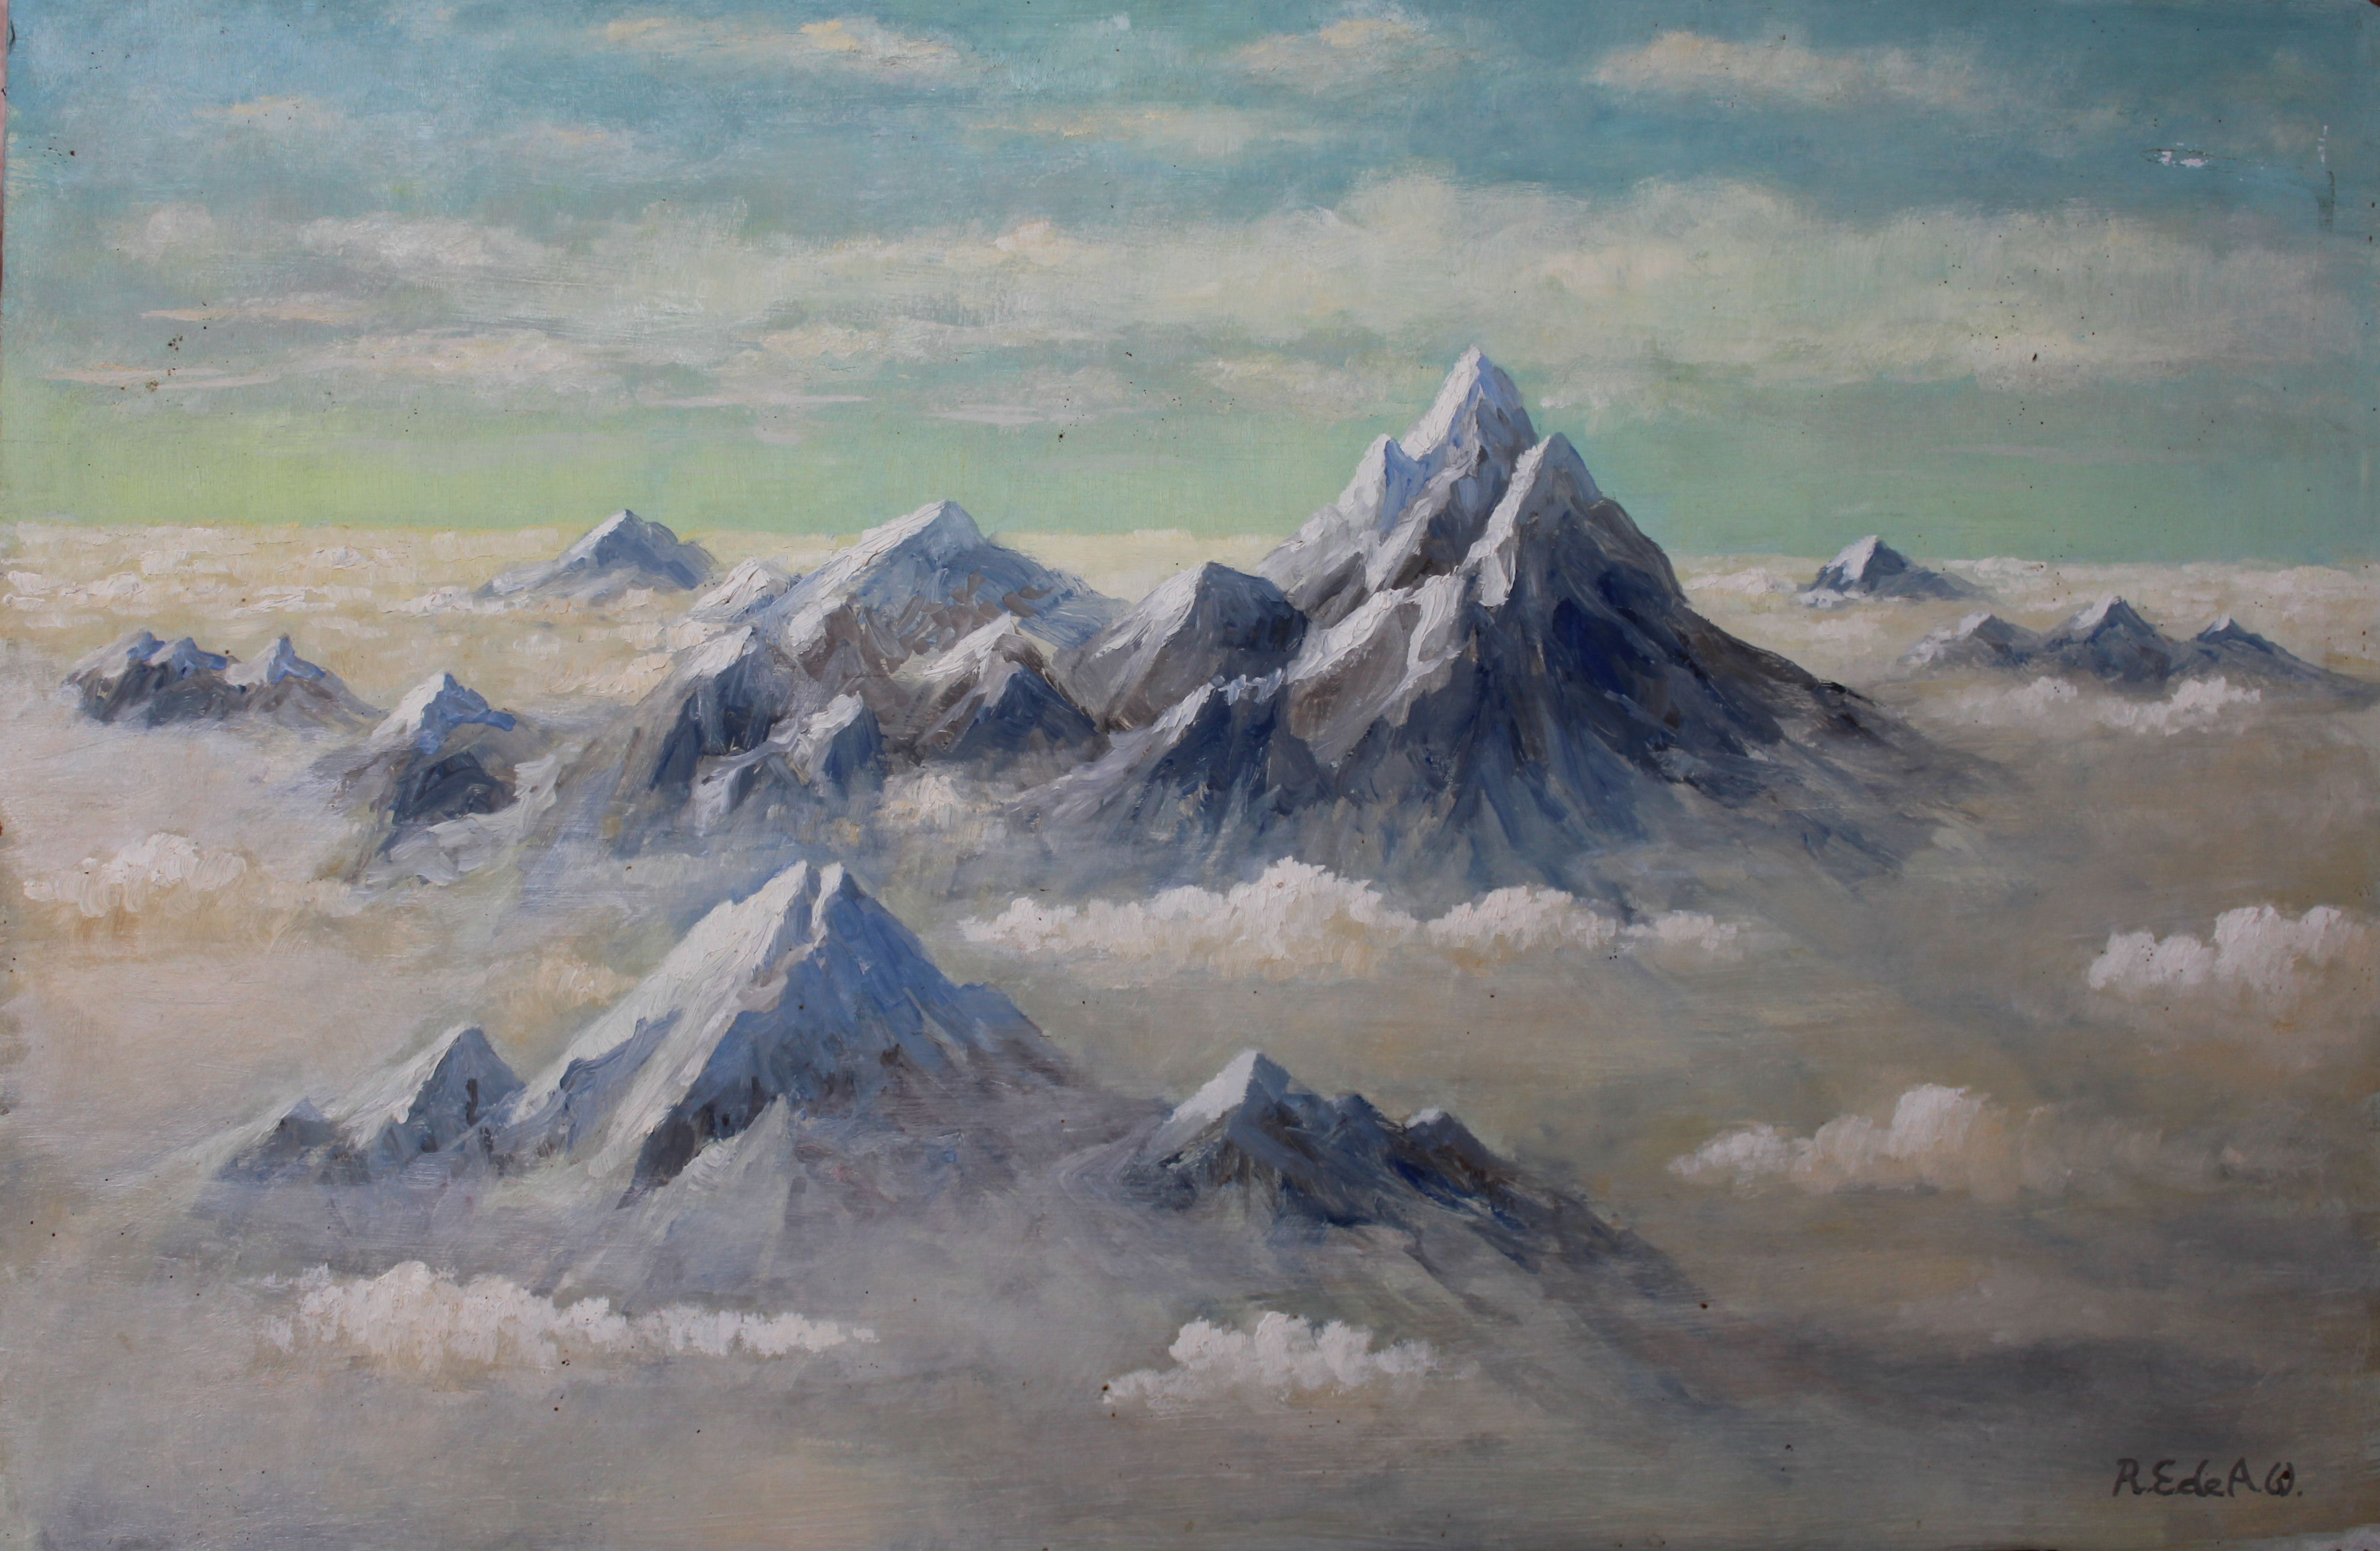 •STUDY OF THE ALPS FROM THE AIR Signed unframed oil on board, 41 x 61cm and another similar view, 30